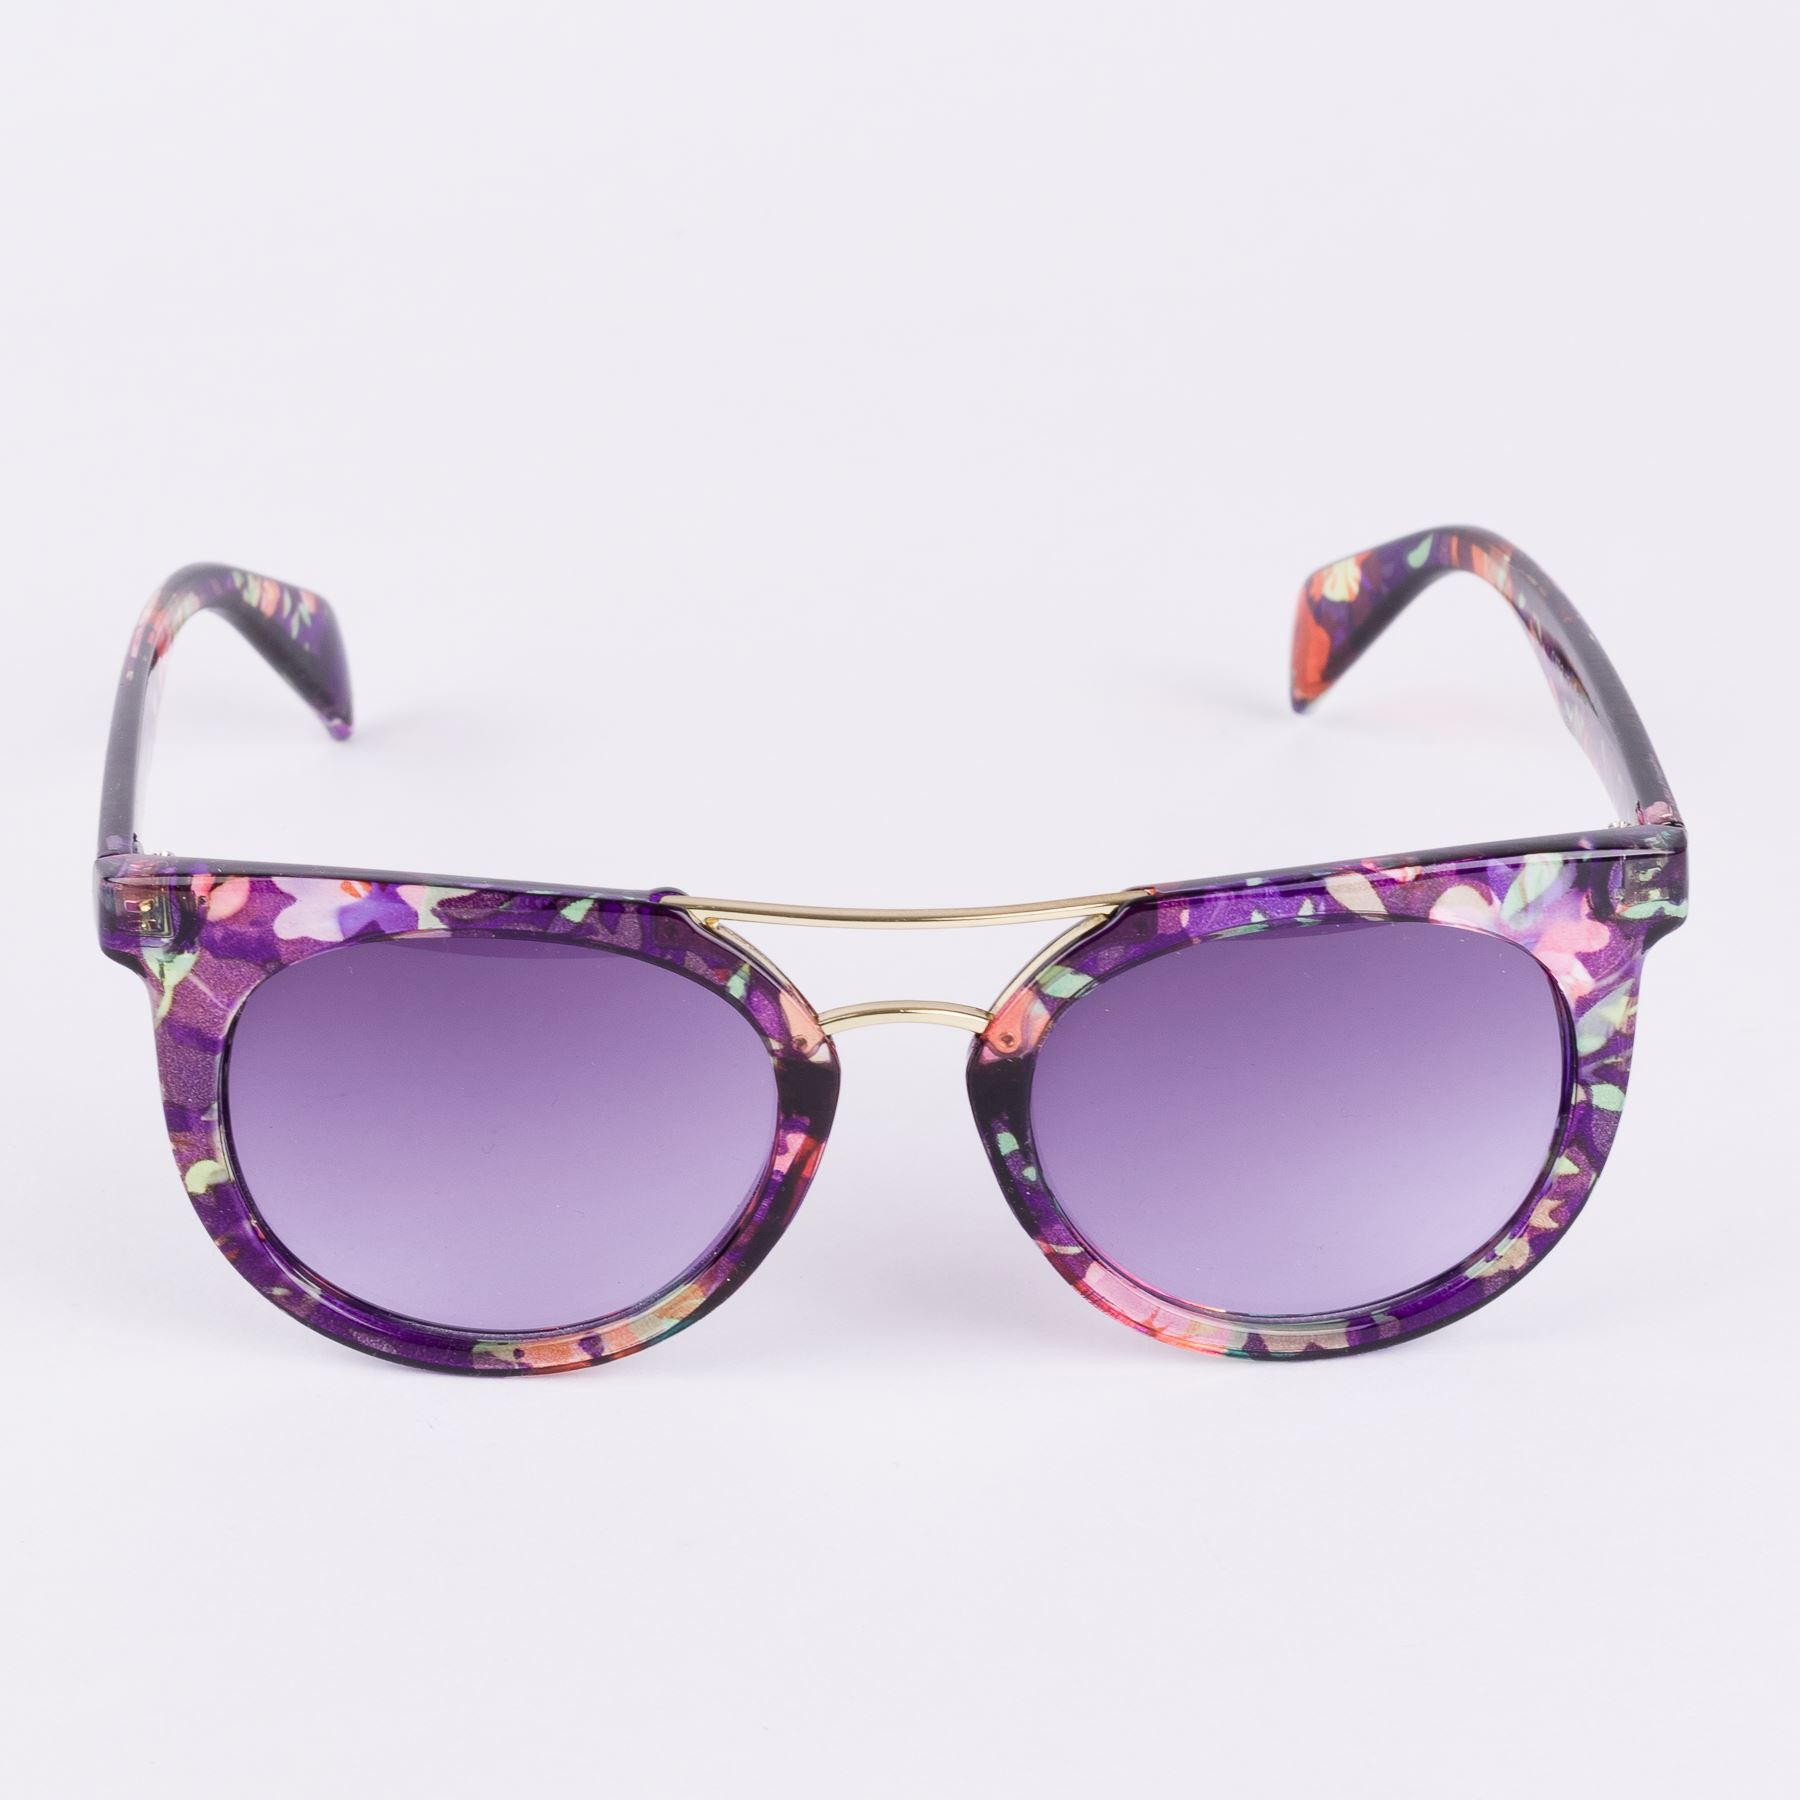 Retro Style Horn-Rimmed Sunglasses With Metal Top Bar